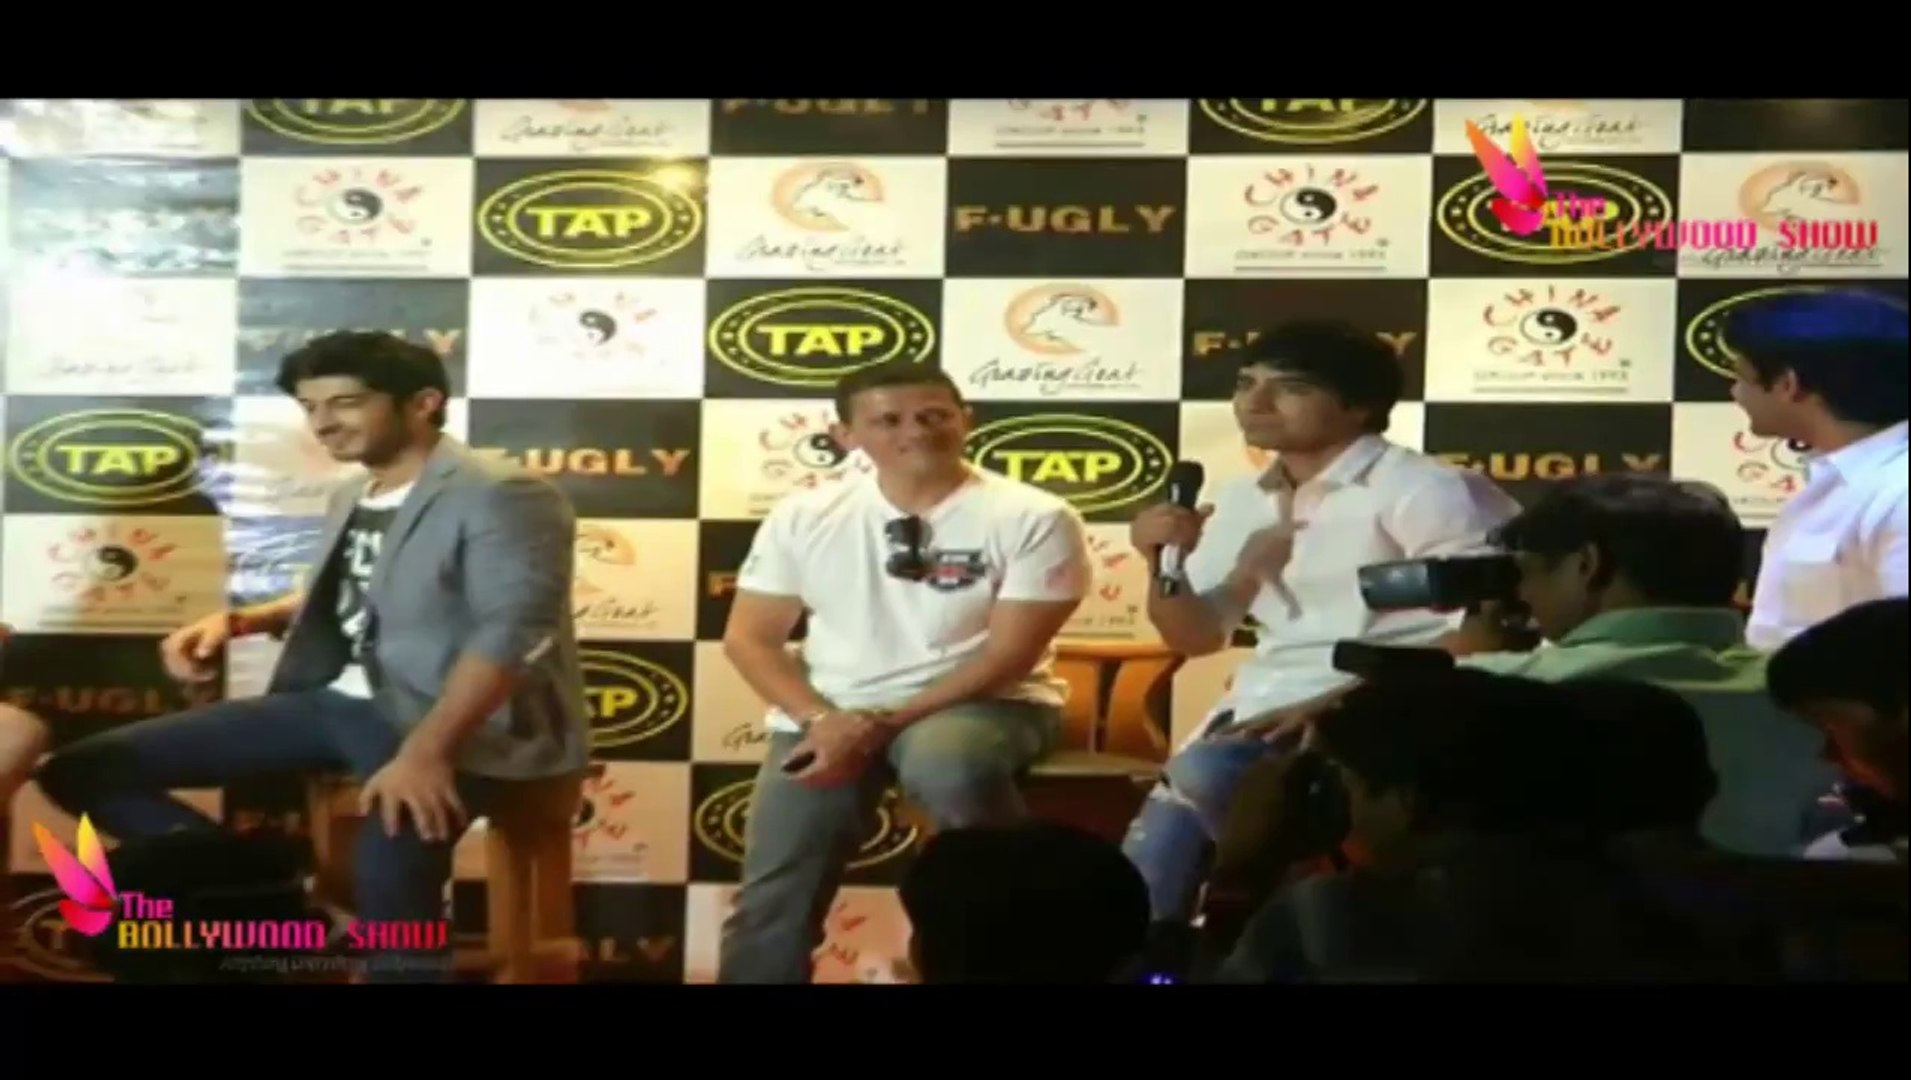 FUGLY Actors Vijender Singh, Kiara Advani, Mohit Marwah & Arif Lamba Launch  Sports